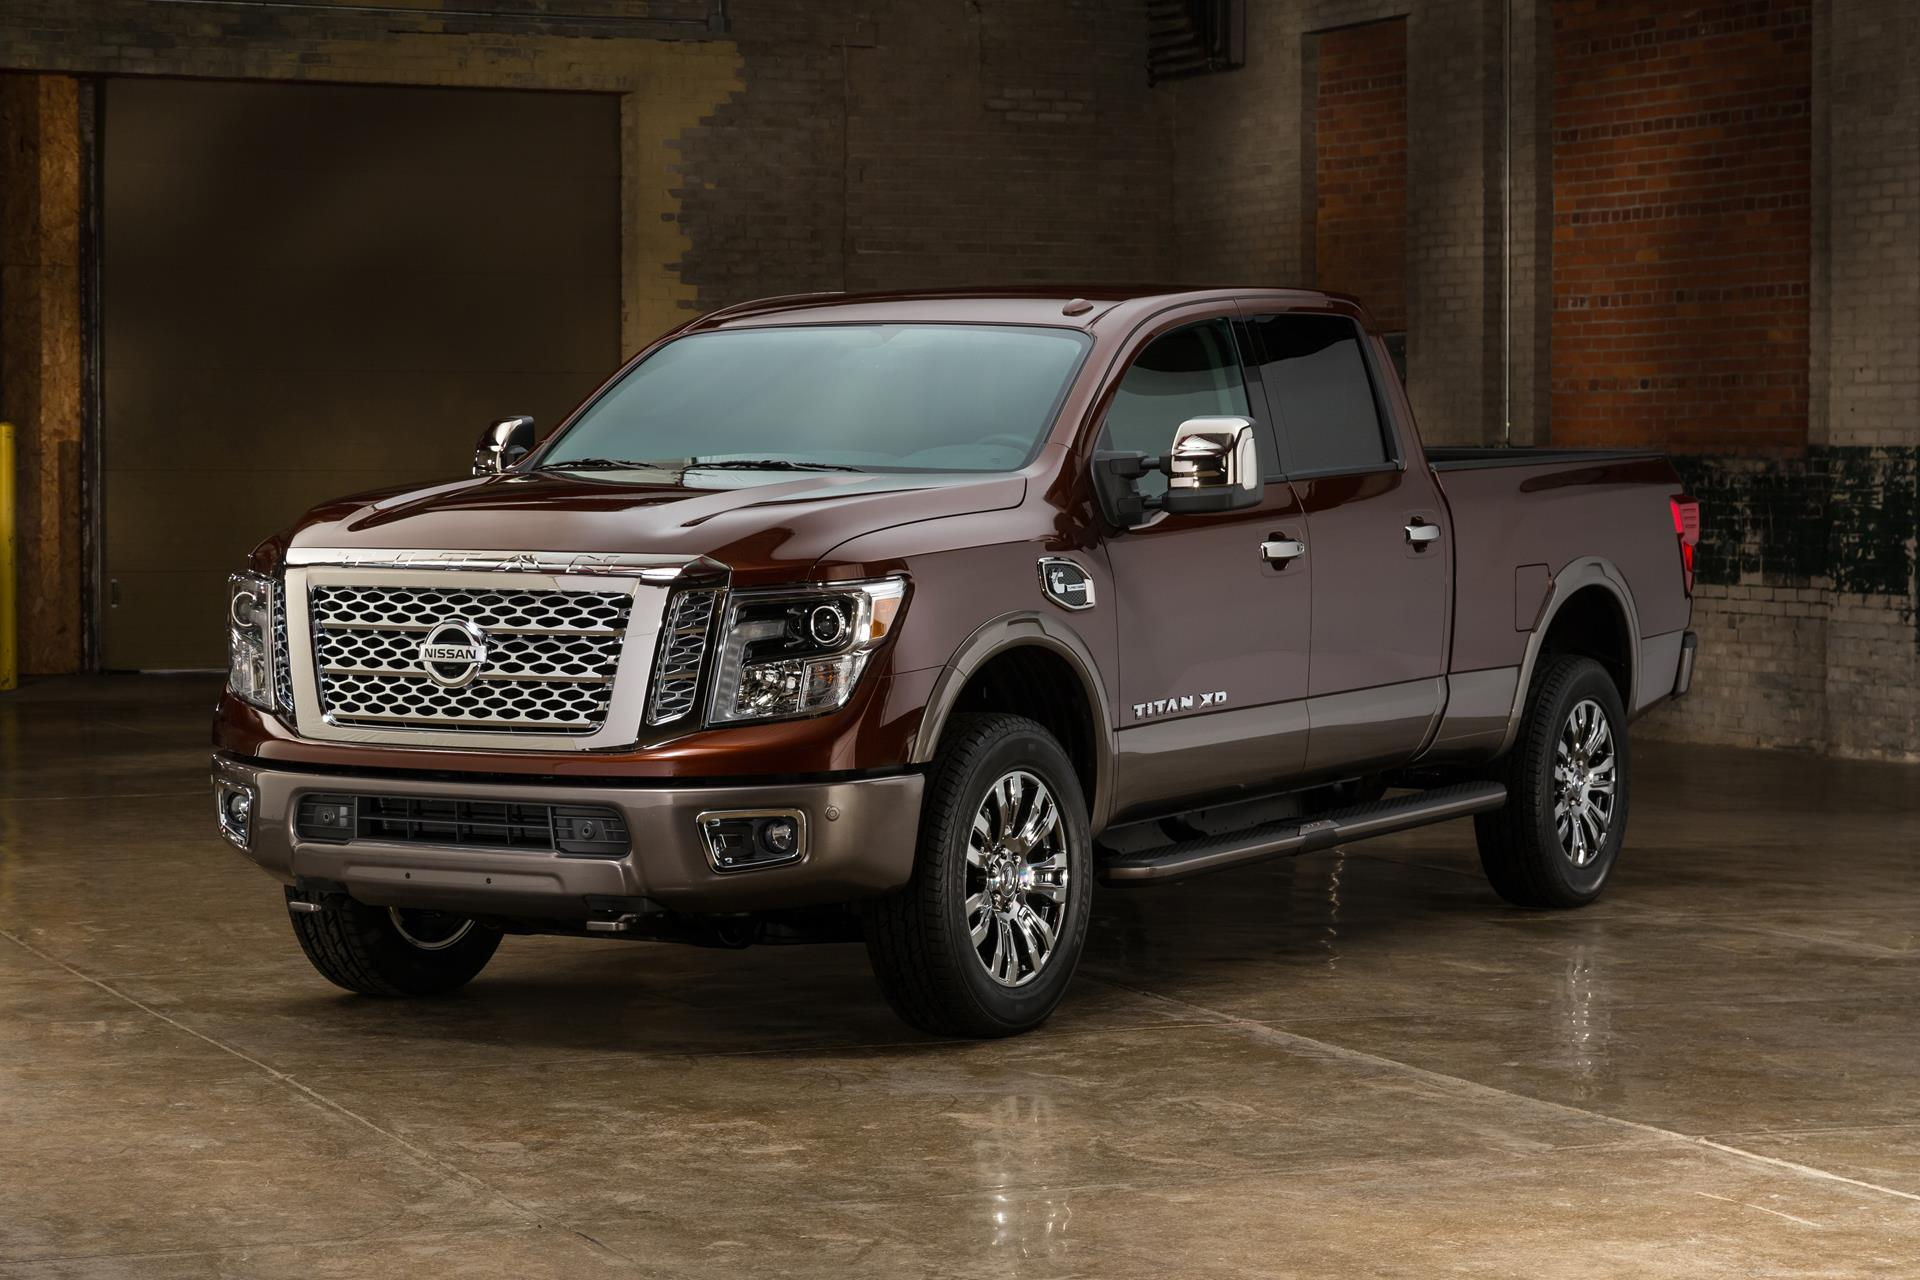 2016 nissan titan xd news and information. Black Bedroom Furniture Sets. Home Design Ideas